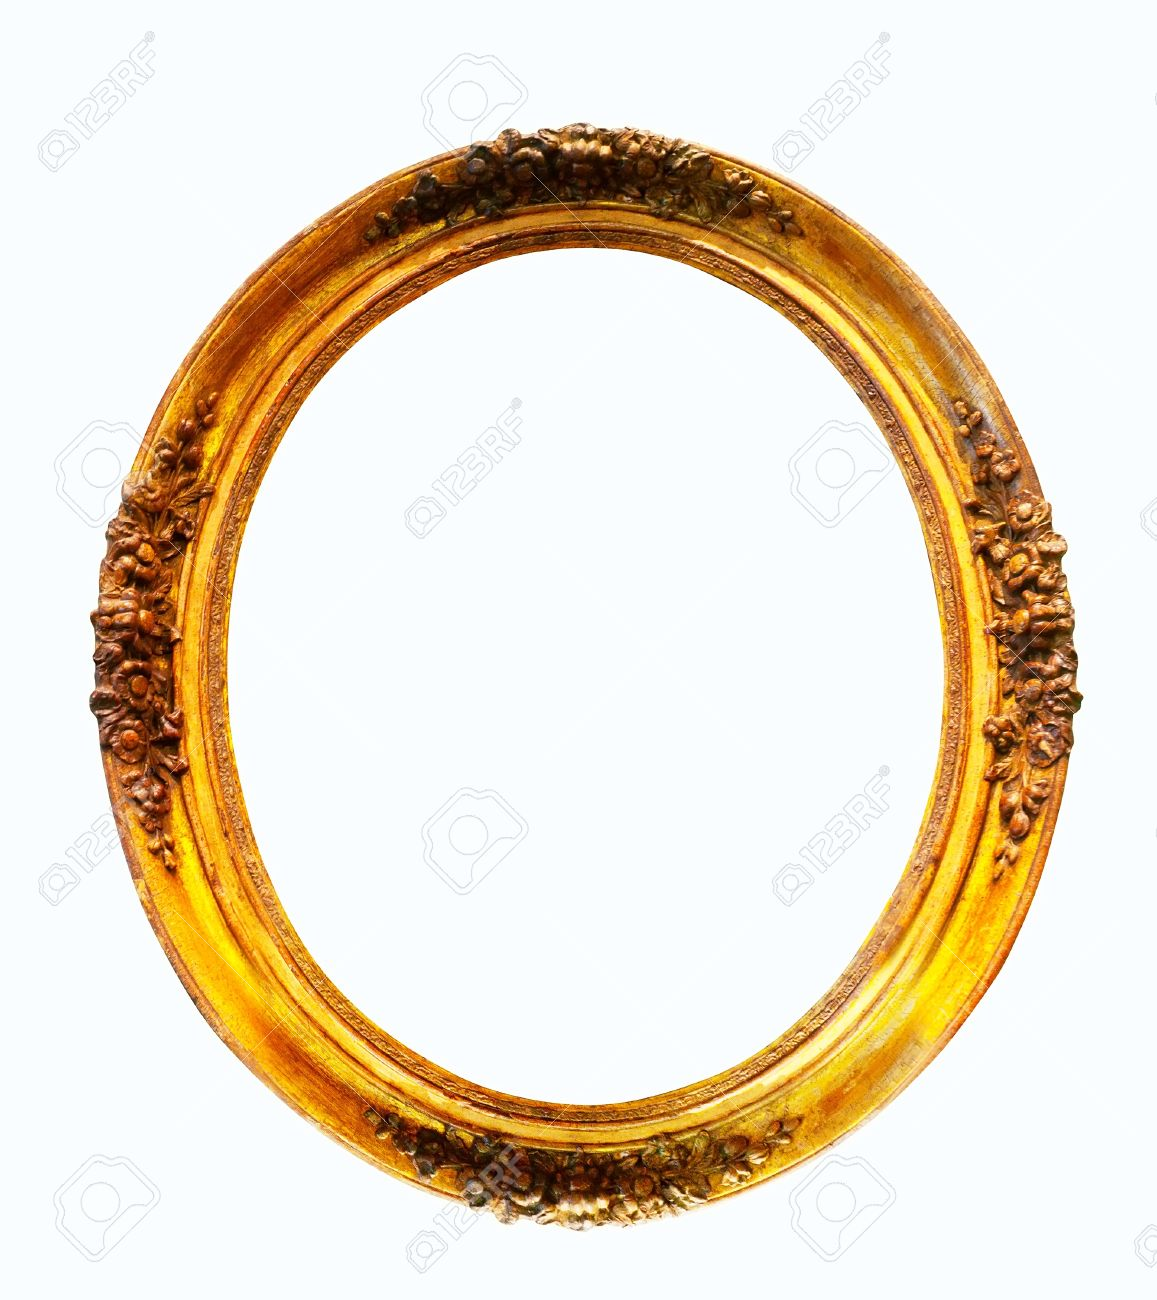 stock photo oval gilded frame isolated over white background with clipping path